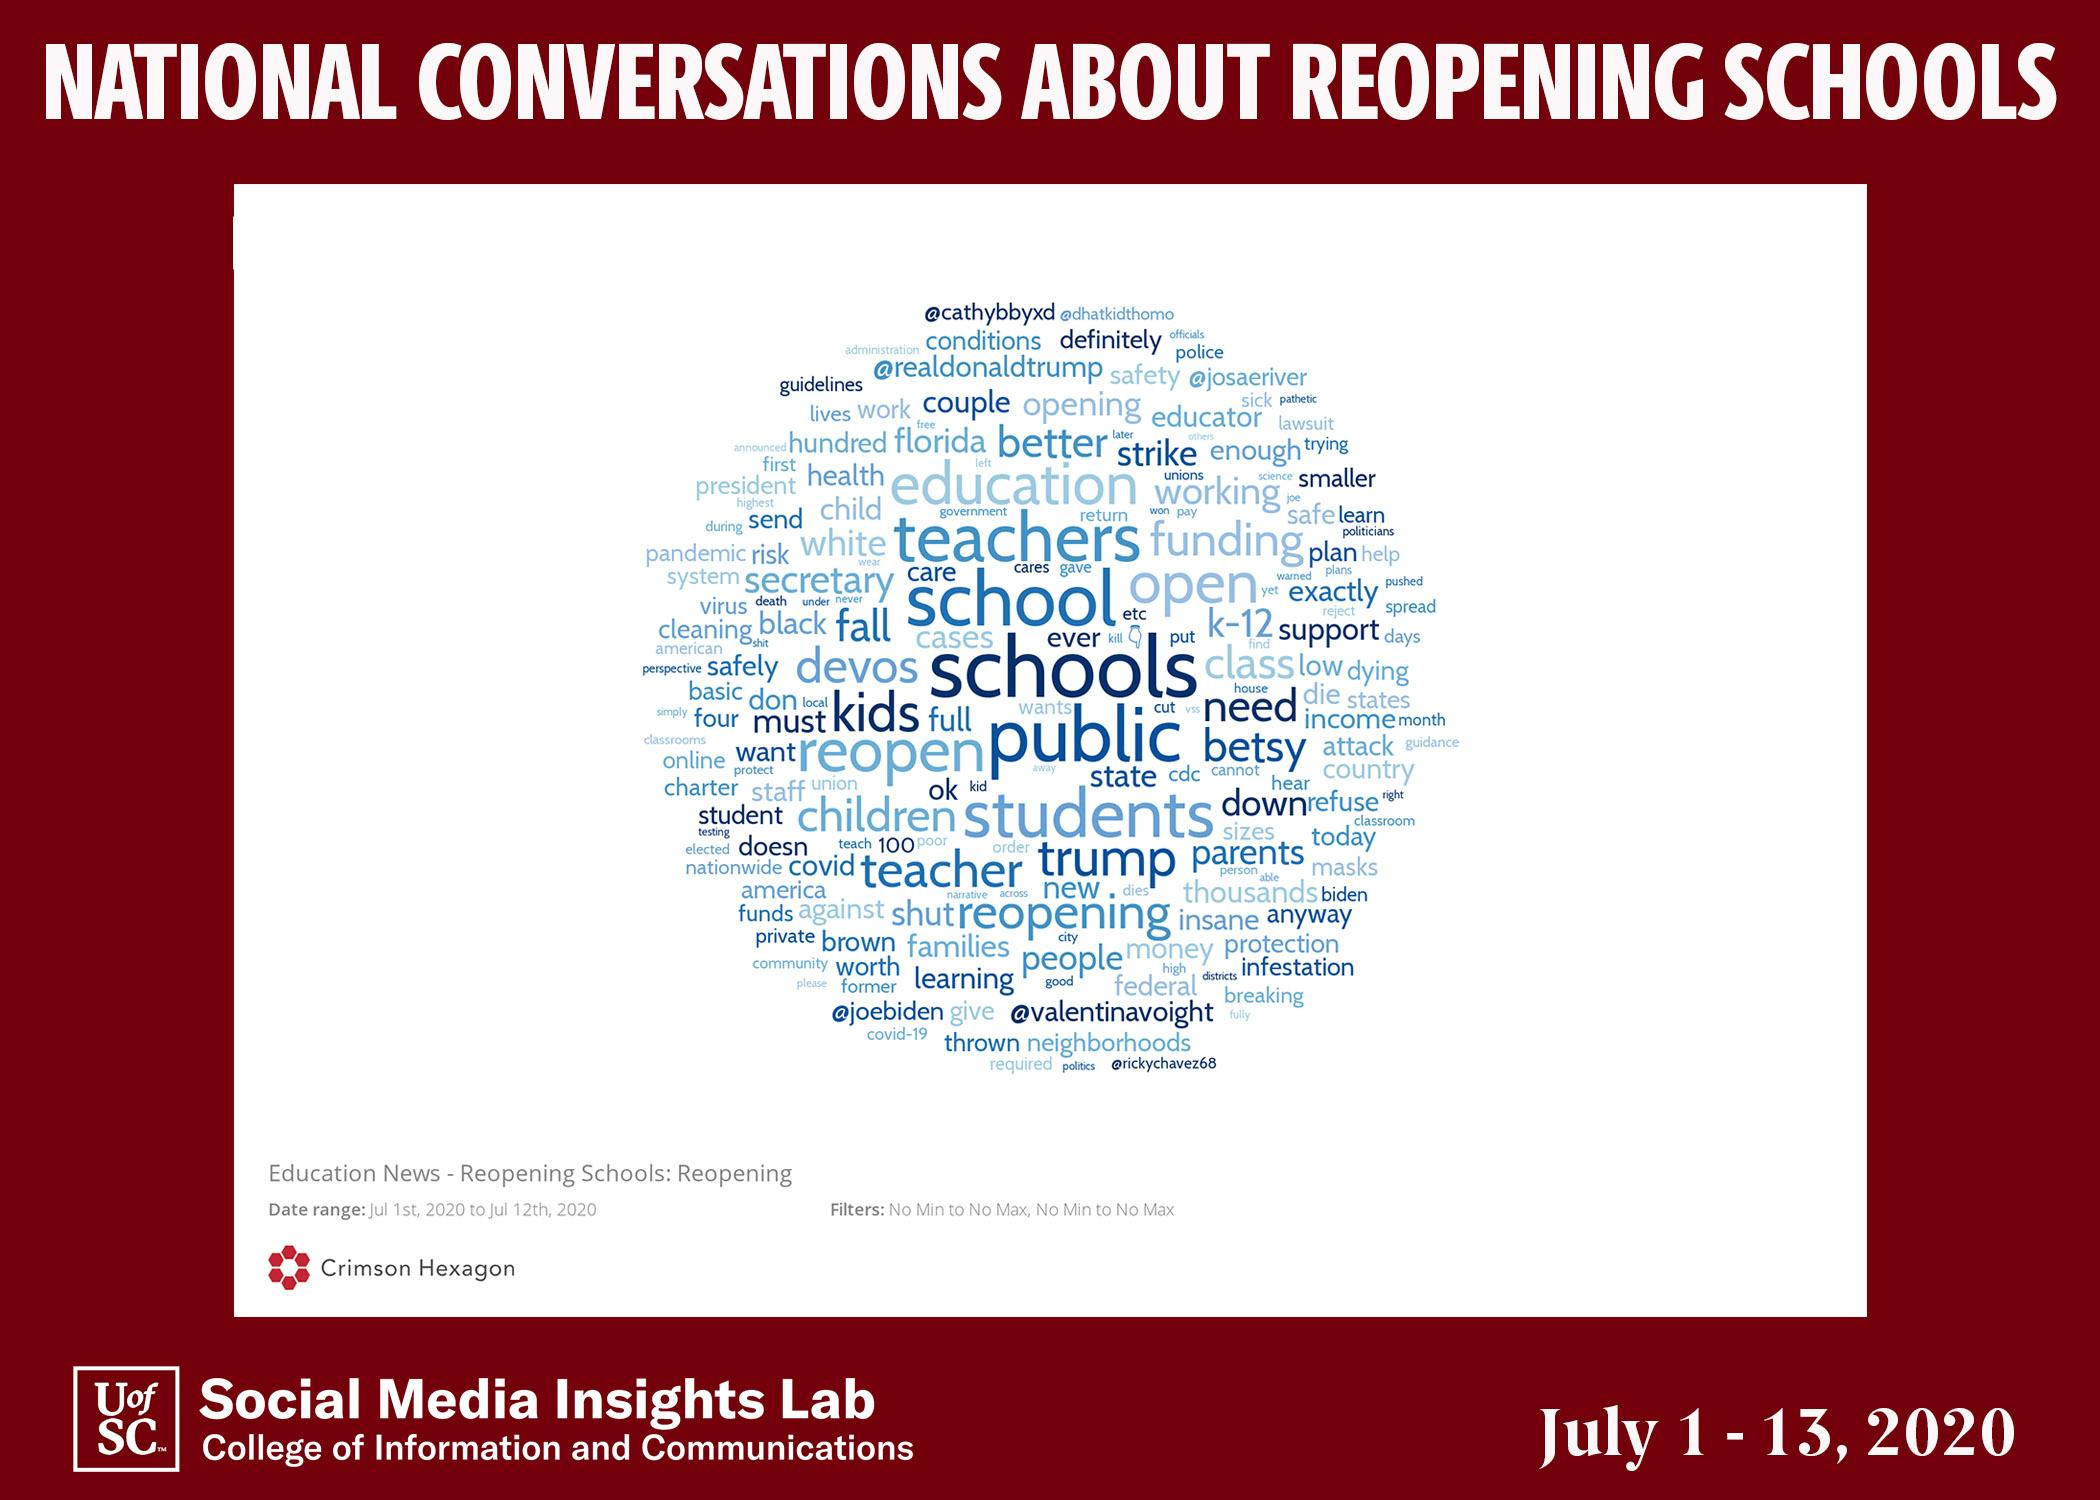 This word cloud captures the terms used most frequently in more than 777,000 social media posts about school reopening.